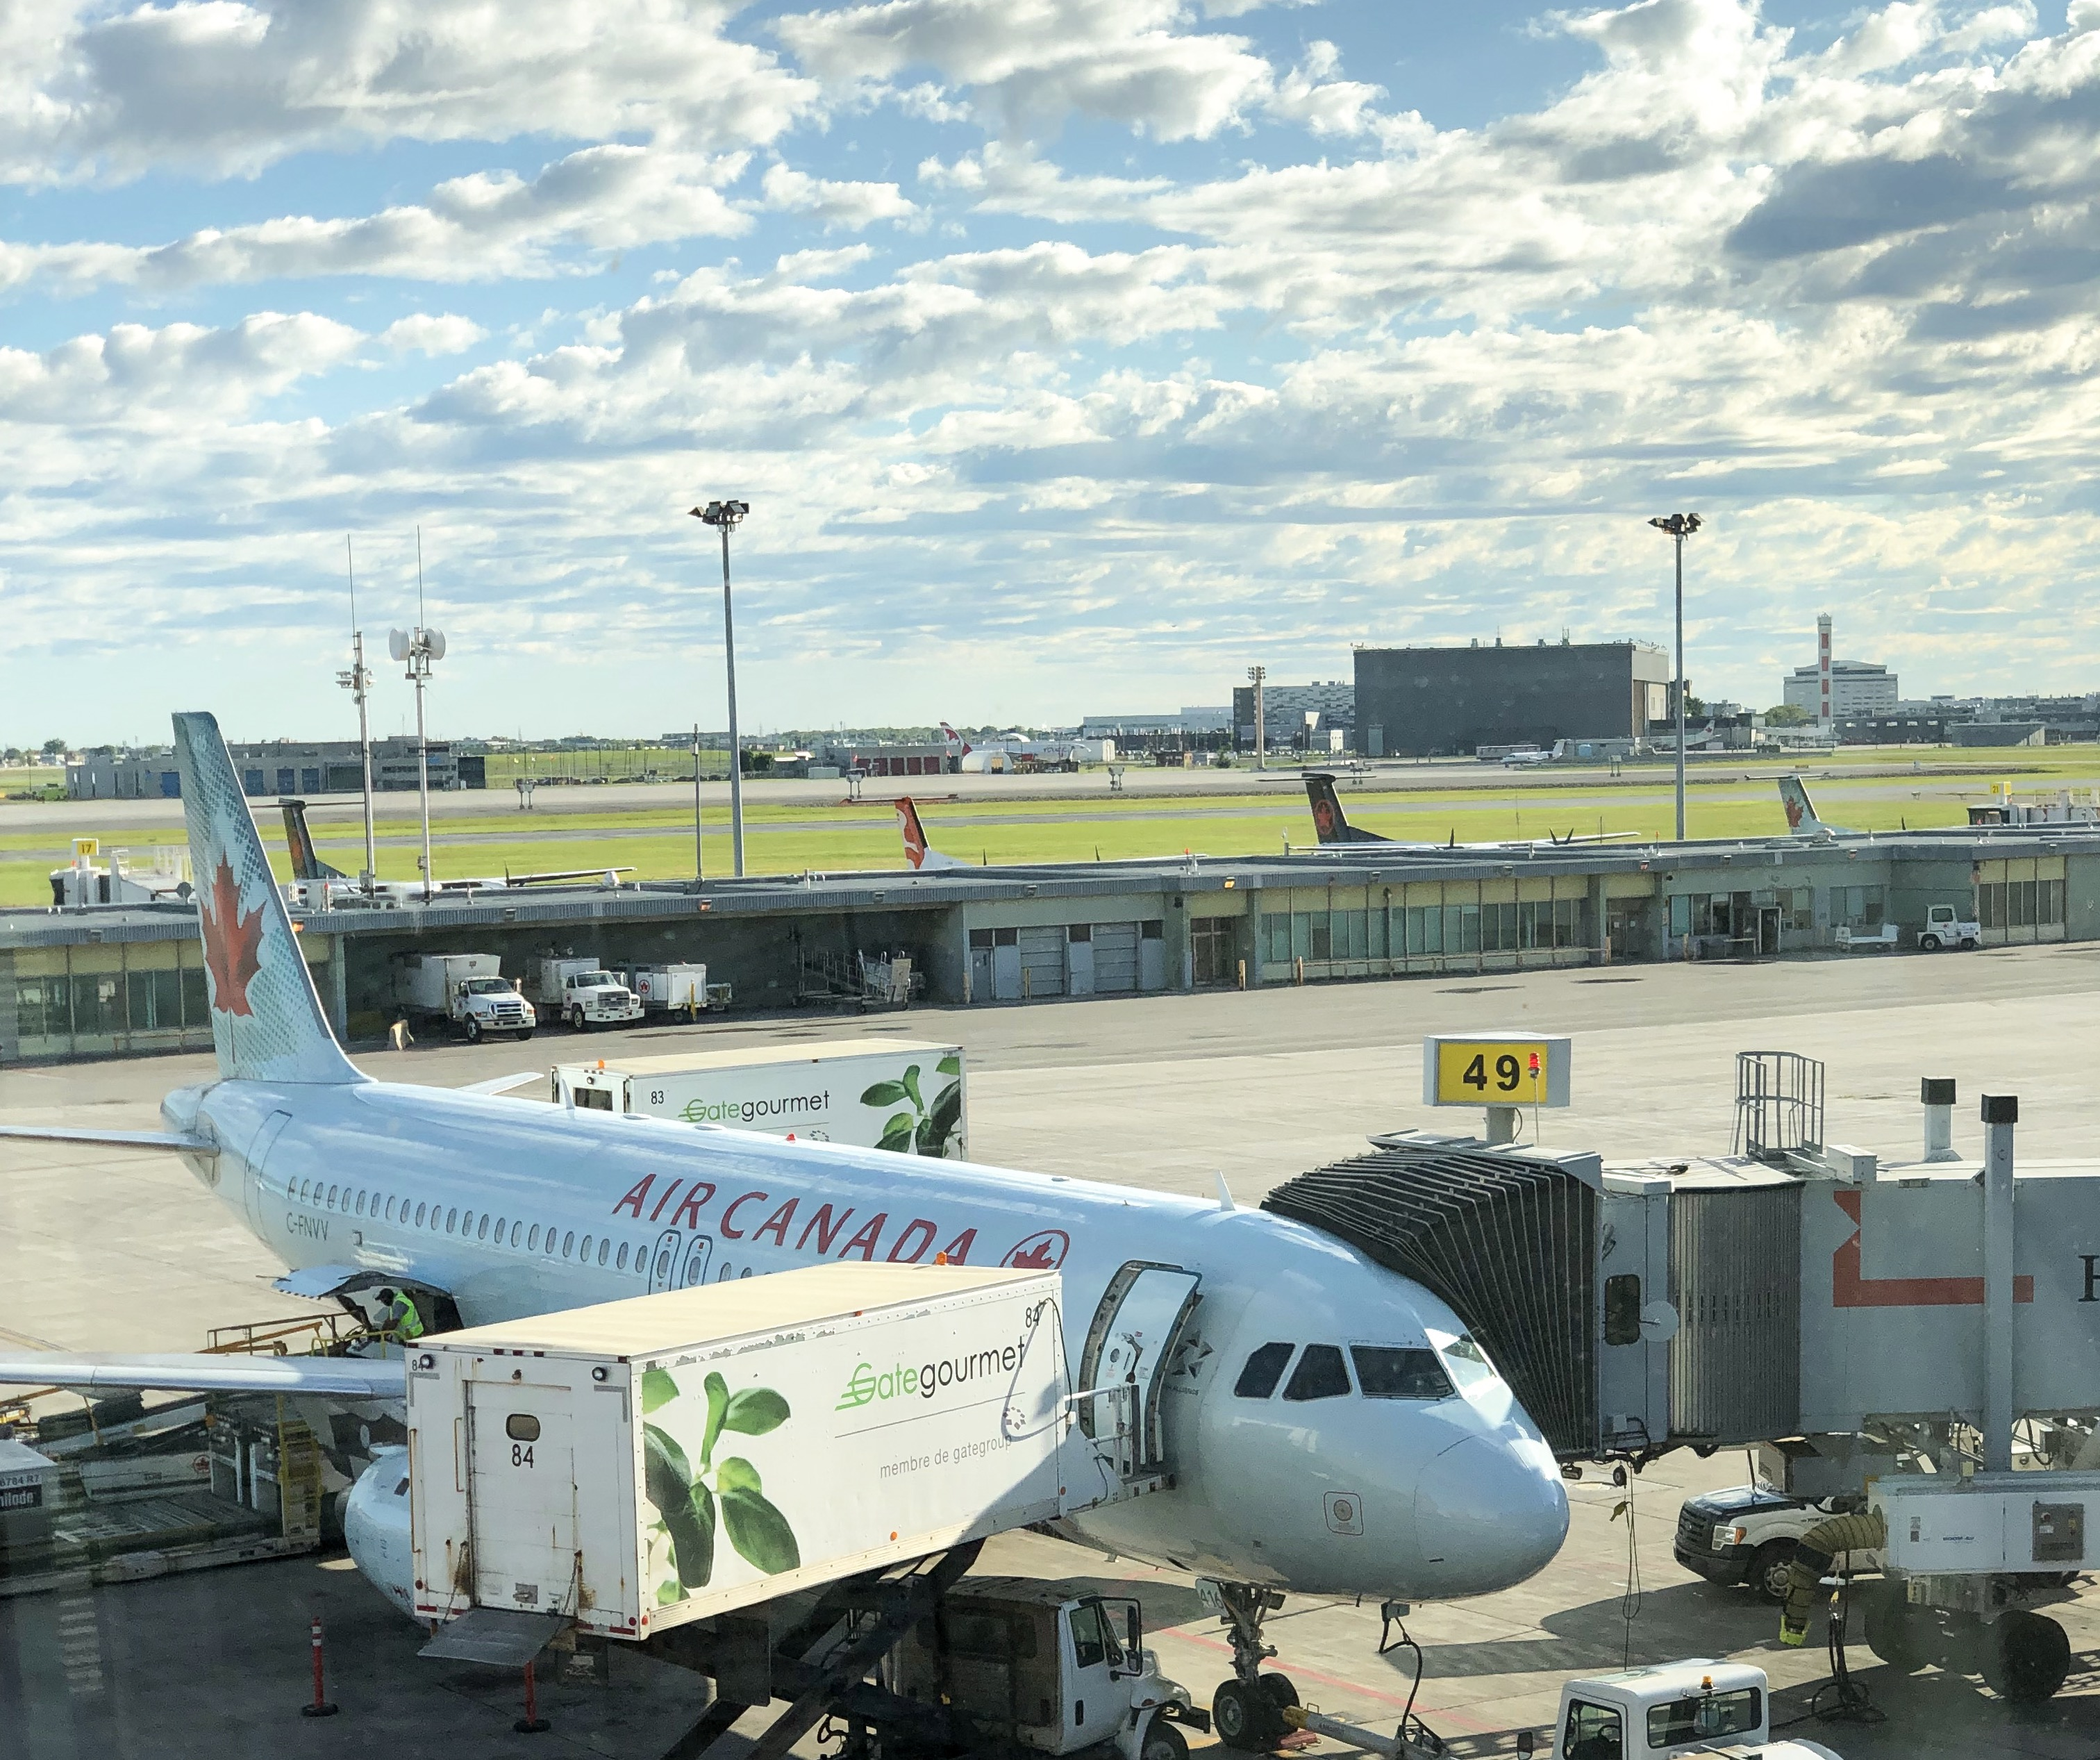 Air Canada Flies to Montreal